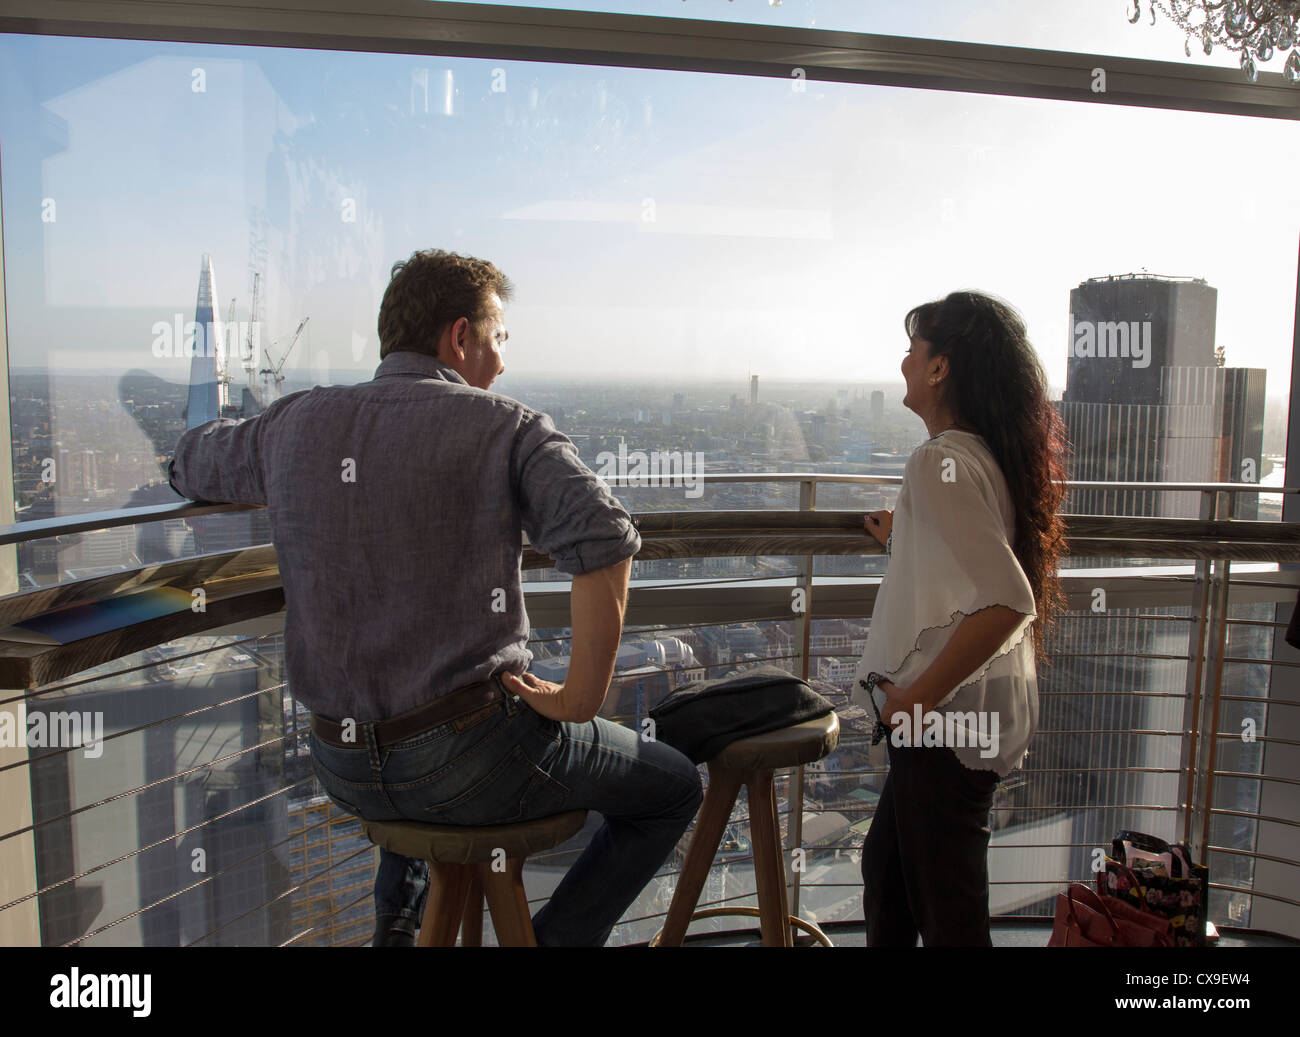 Sky Bar - 39th Floor Heron Tower - City of London - Stock Image